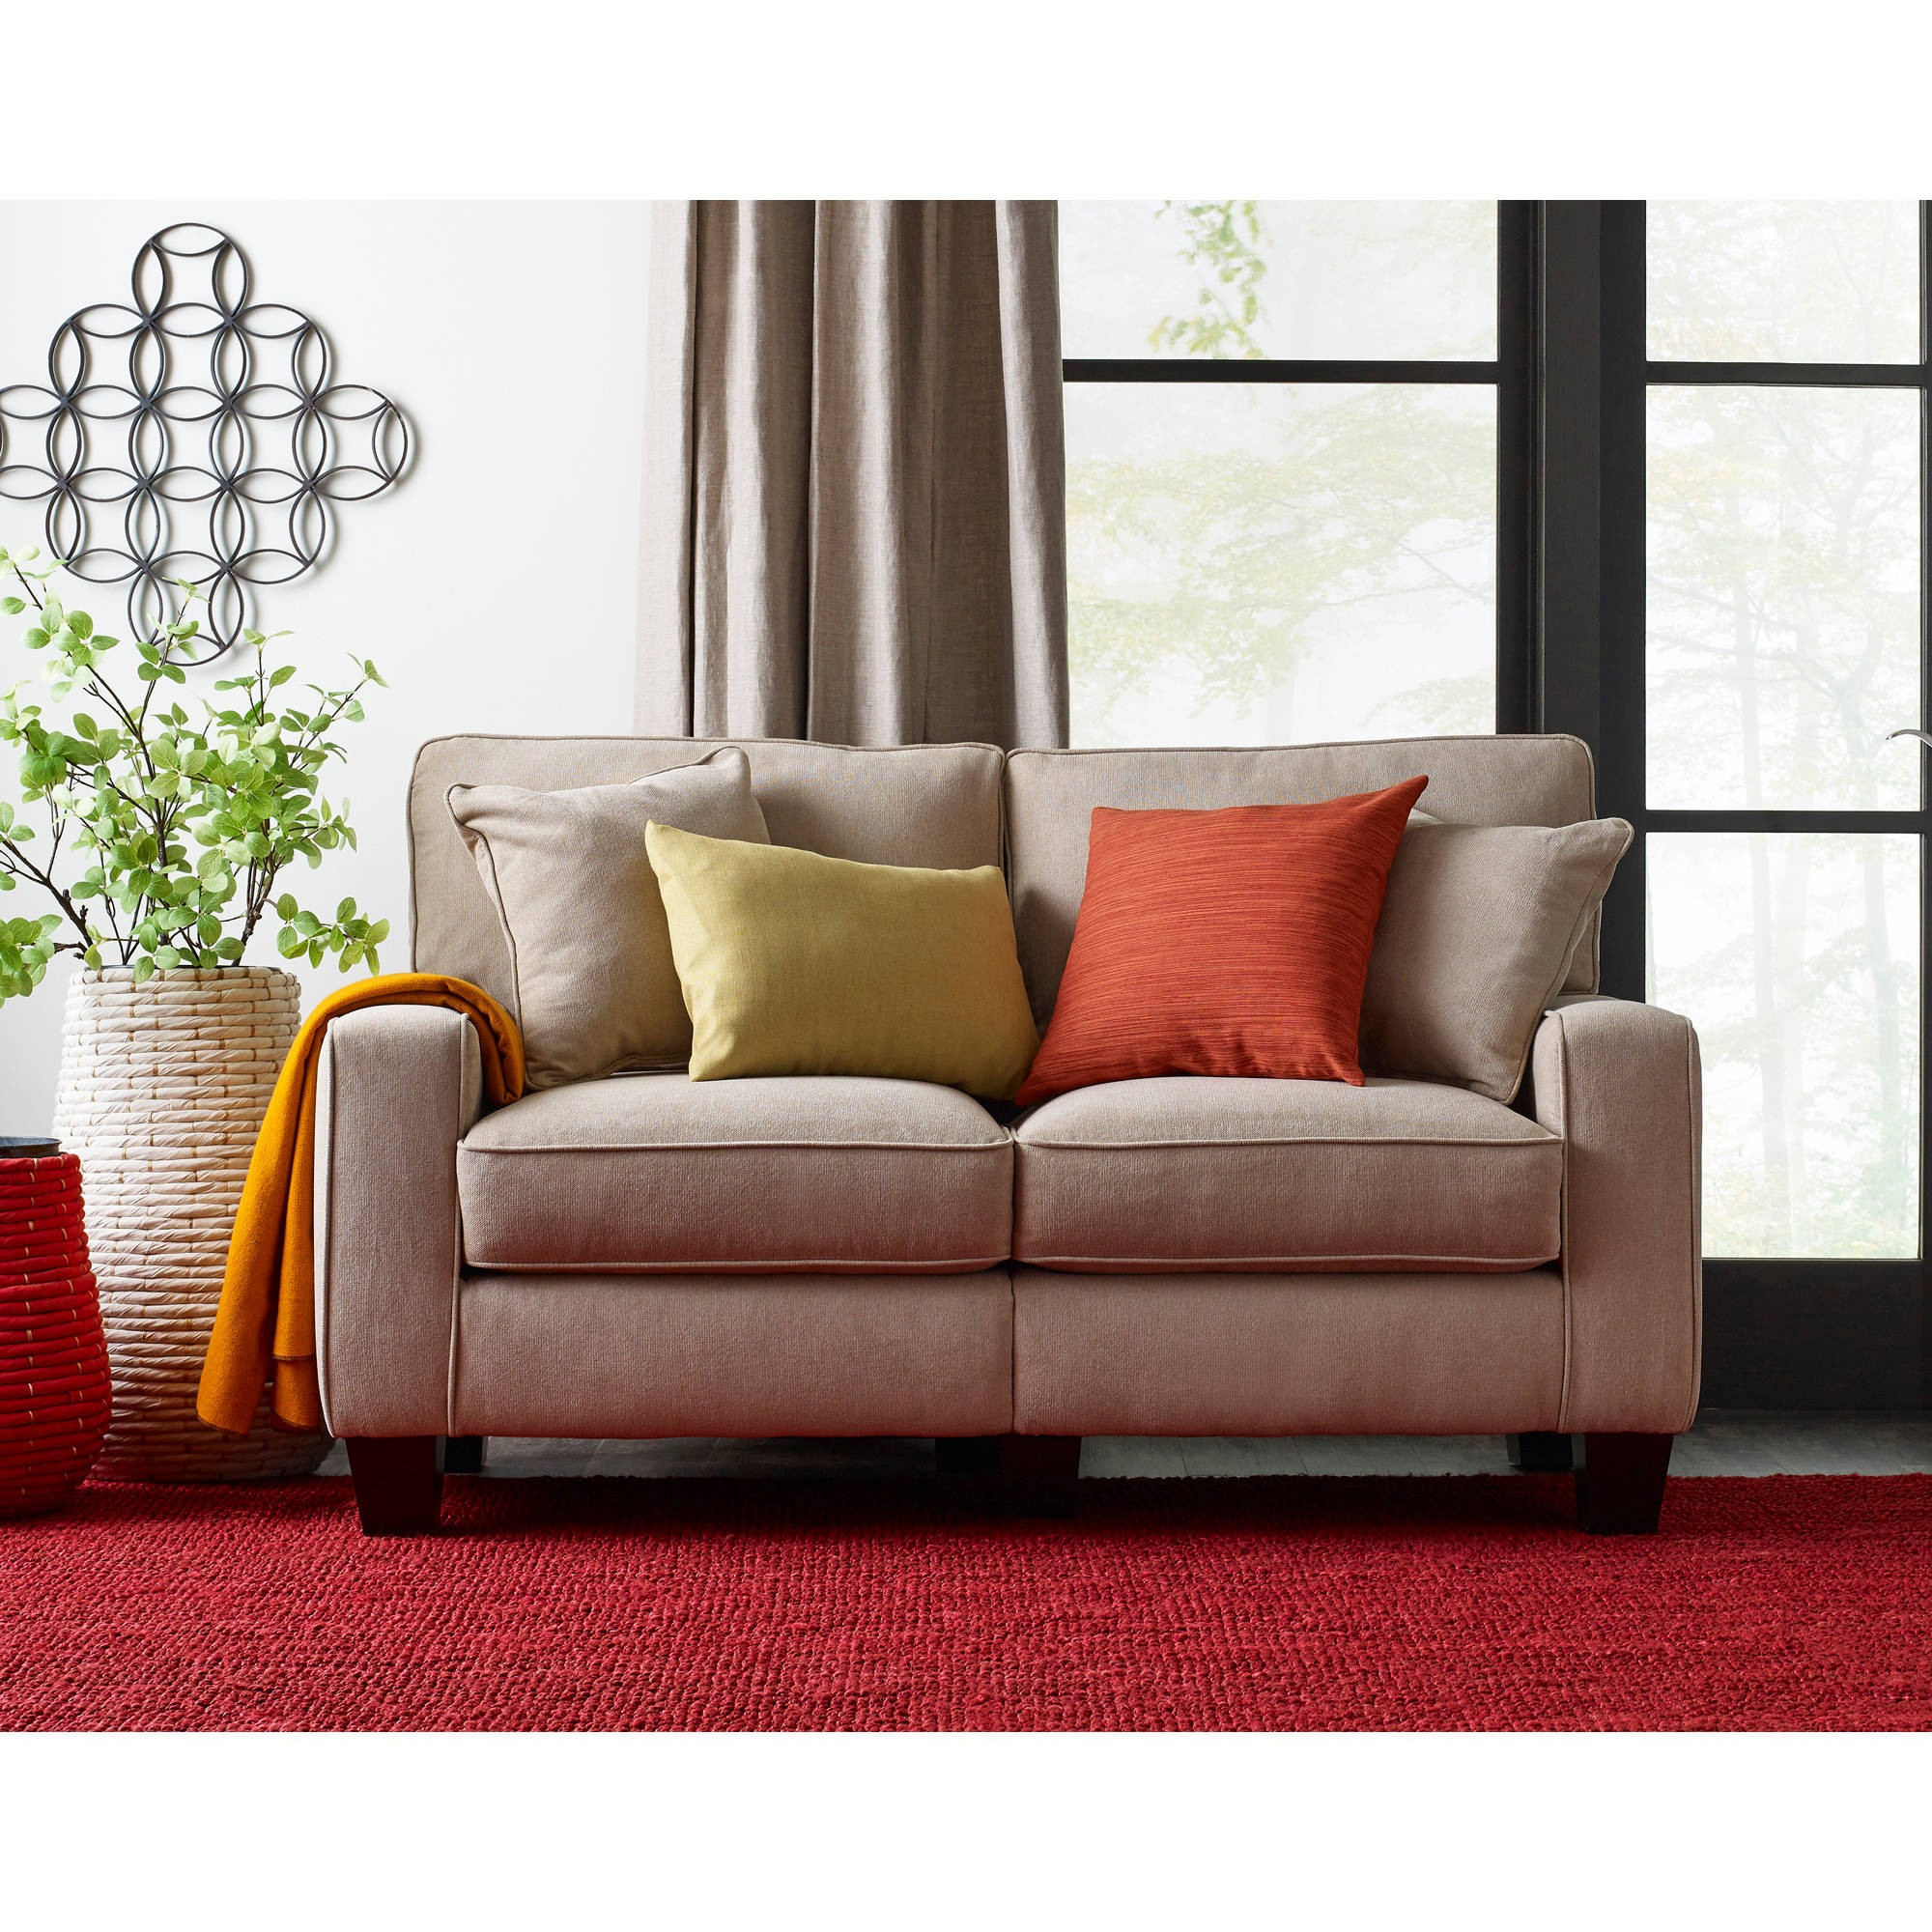 Discount Modern Sofas: Fantastic Cheap Sofas For Under 100 Photograph